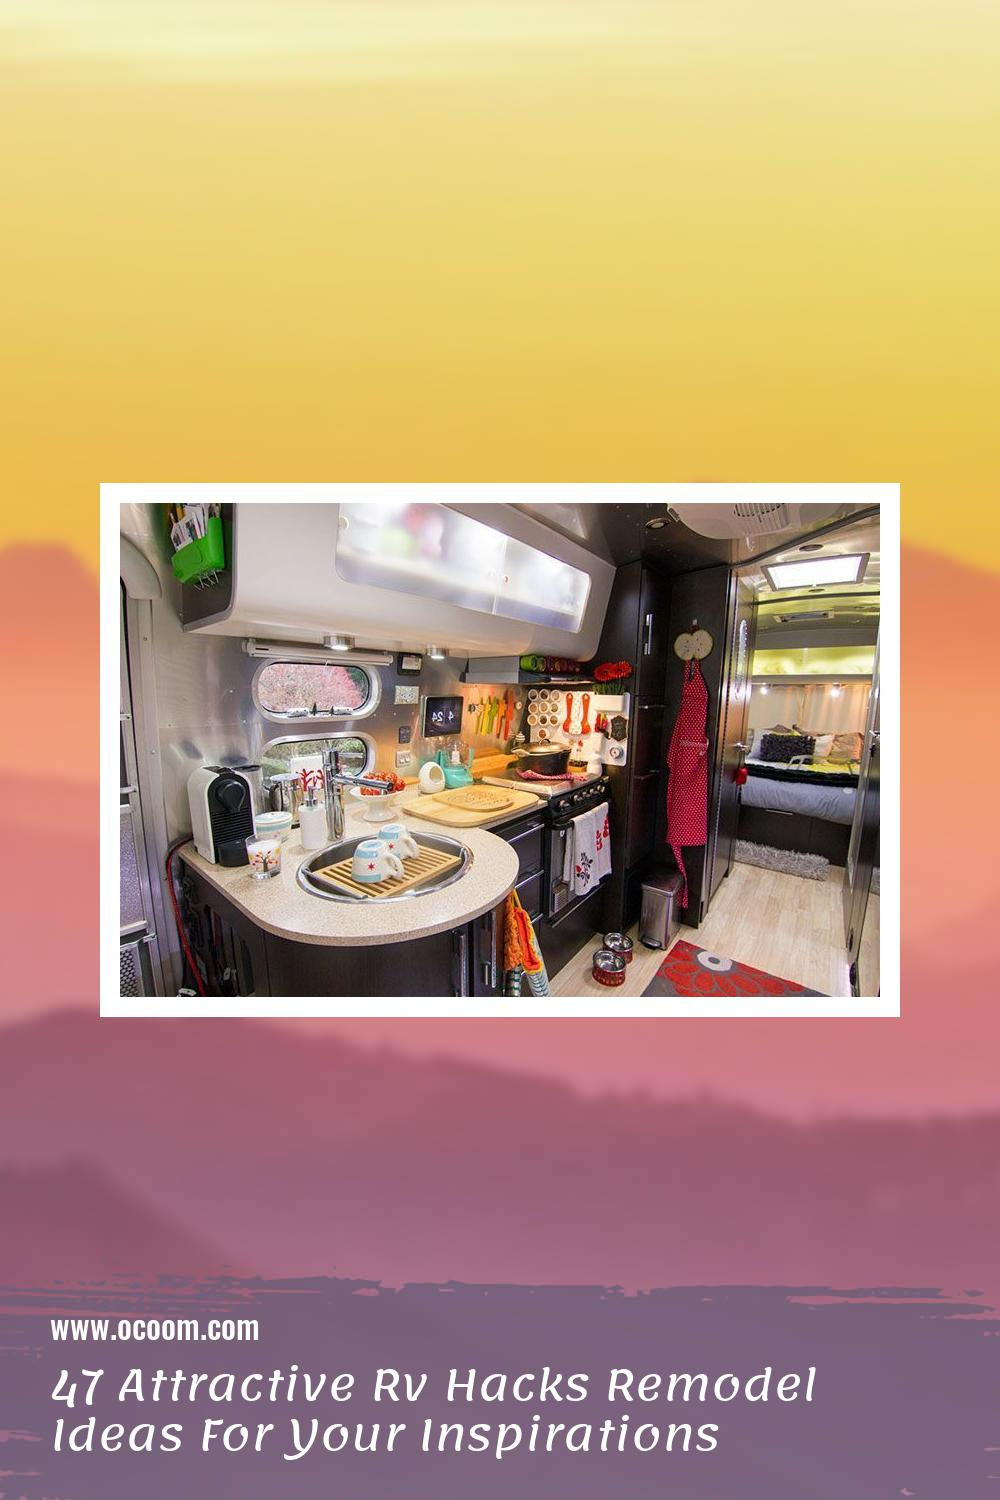 47 Attractive Rv Hacks Remodel Ideas For Your Inspirations 40